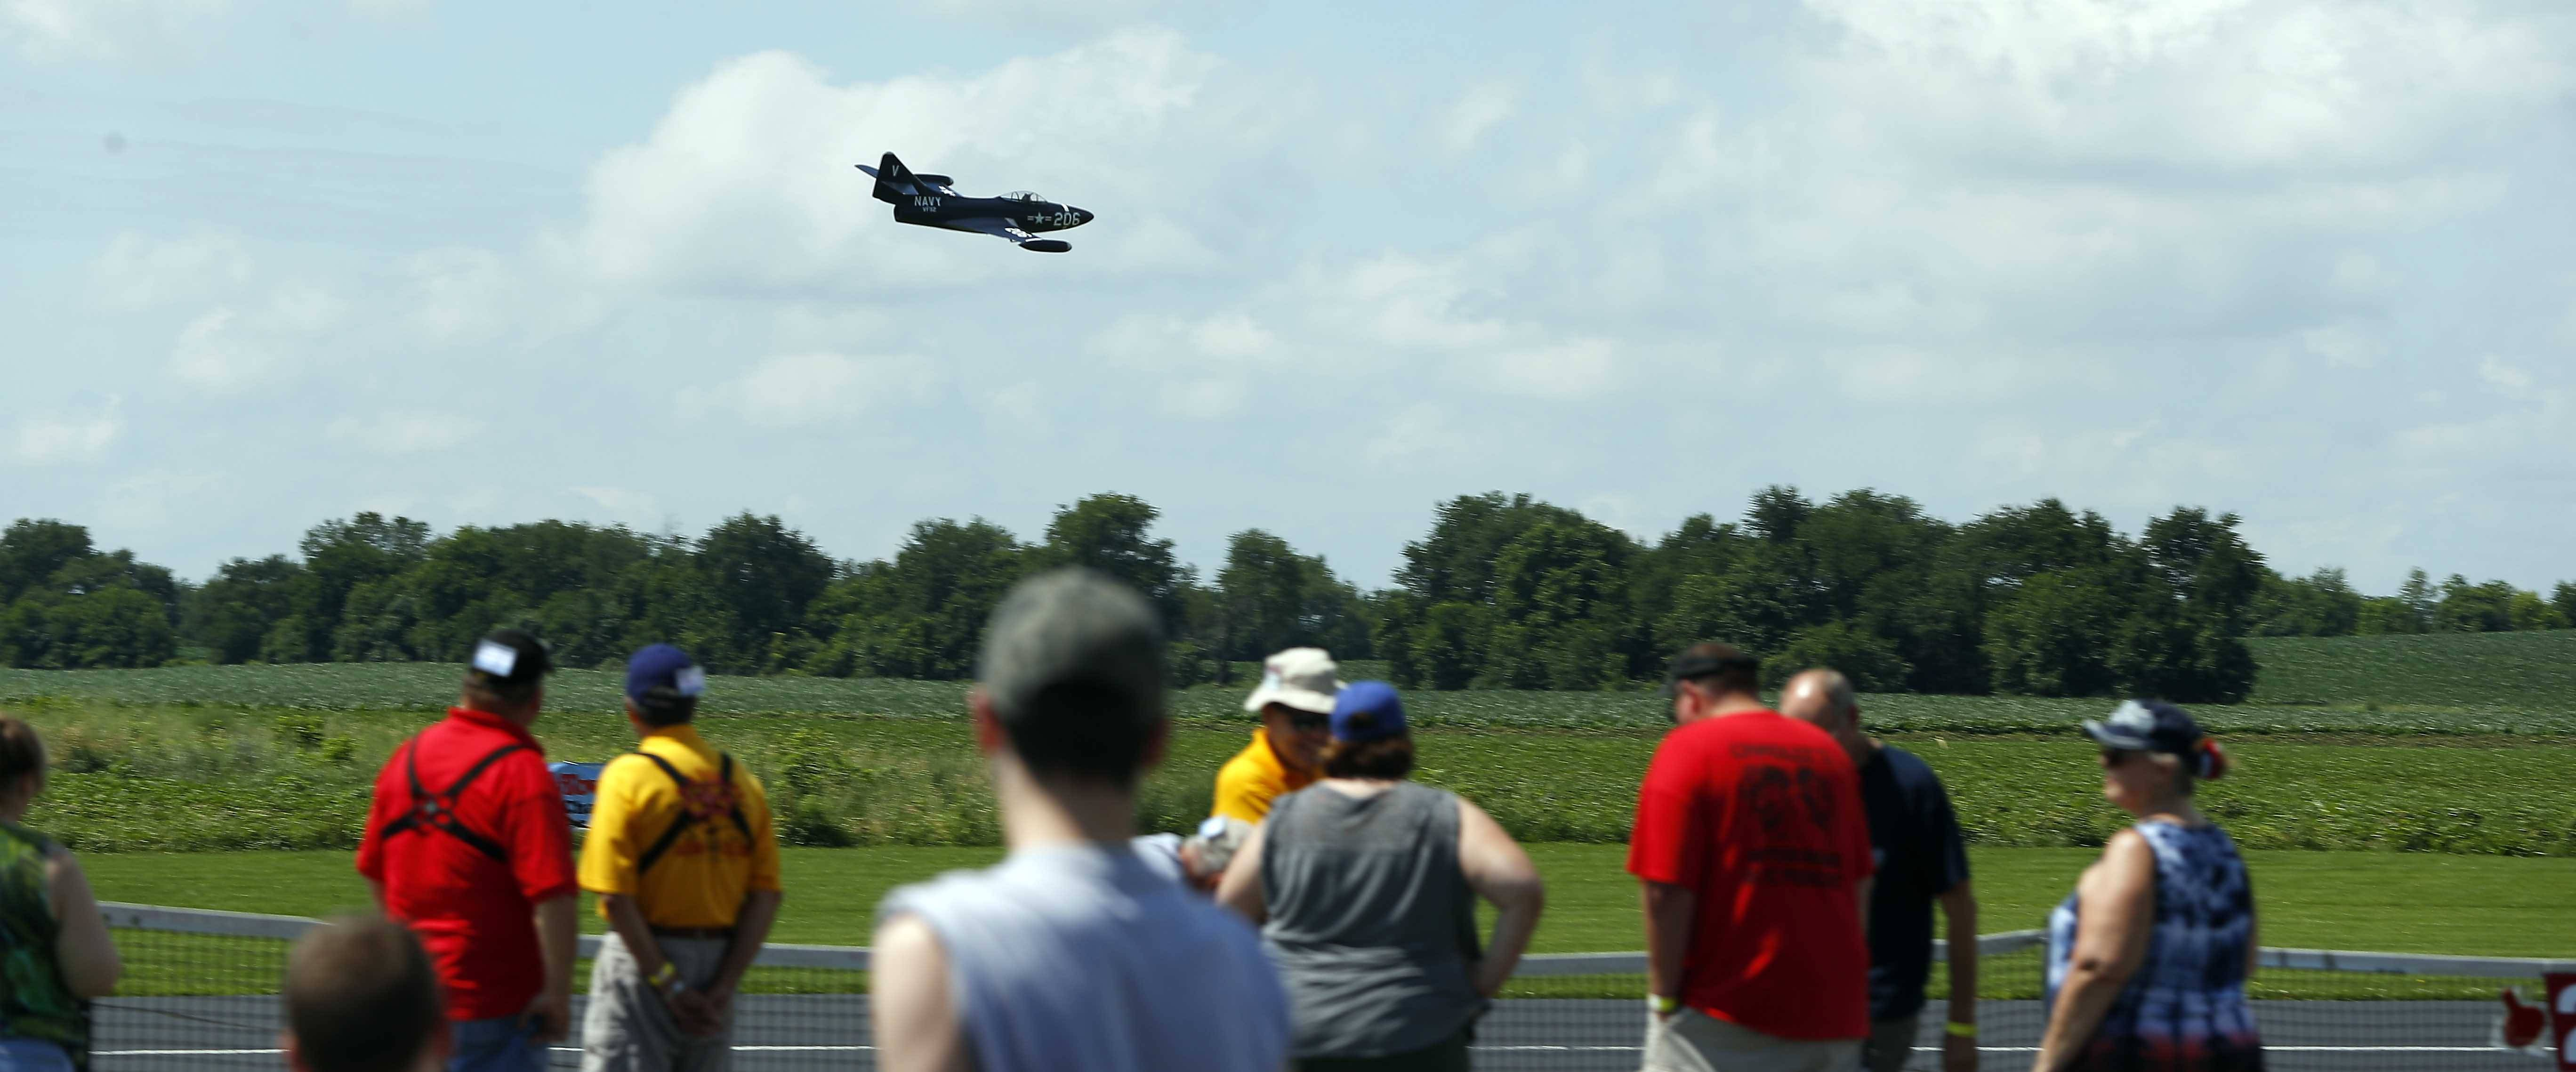 People line up to watch as a radio-controlled plane races past Saturday during the Windy City Warbirds and Classics radio-controlled model air show, sponsored by the Fox Valley Aero Club.